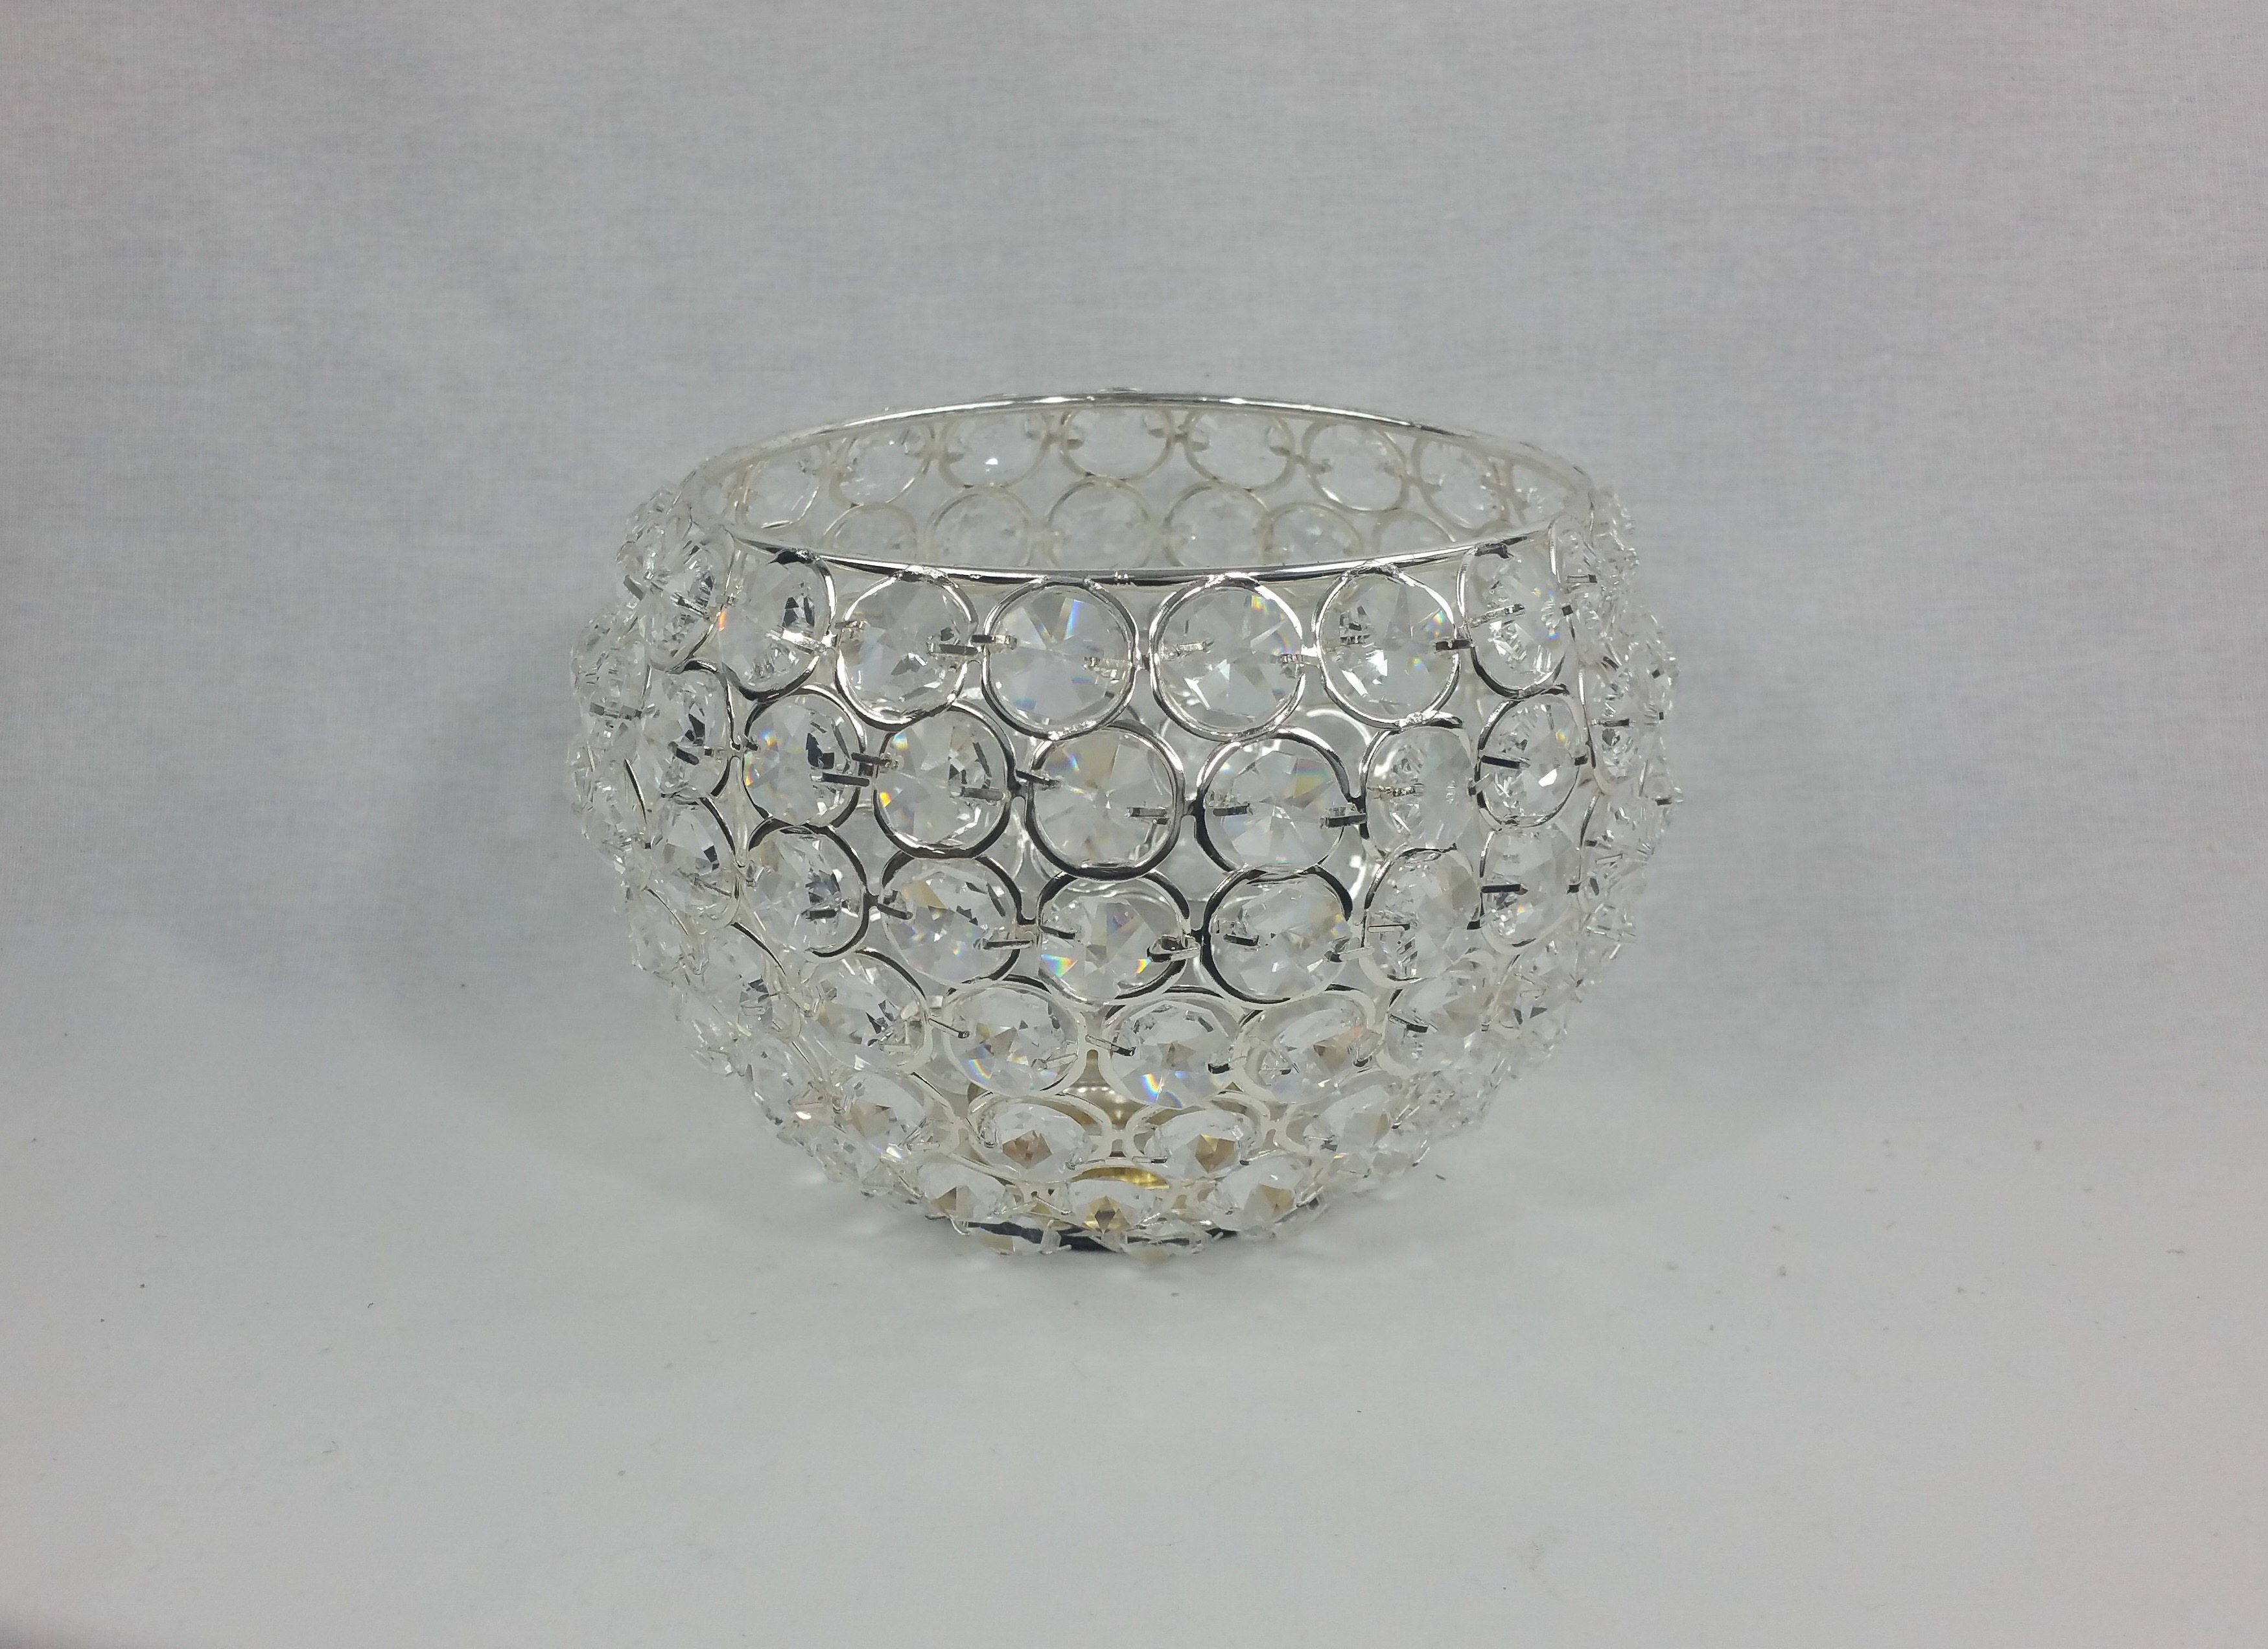 Crystal bowl. 15cm x 10cm. From £4 each.